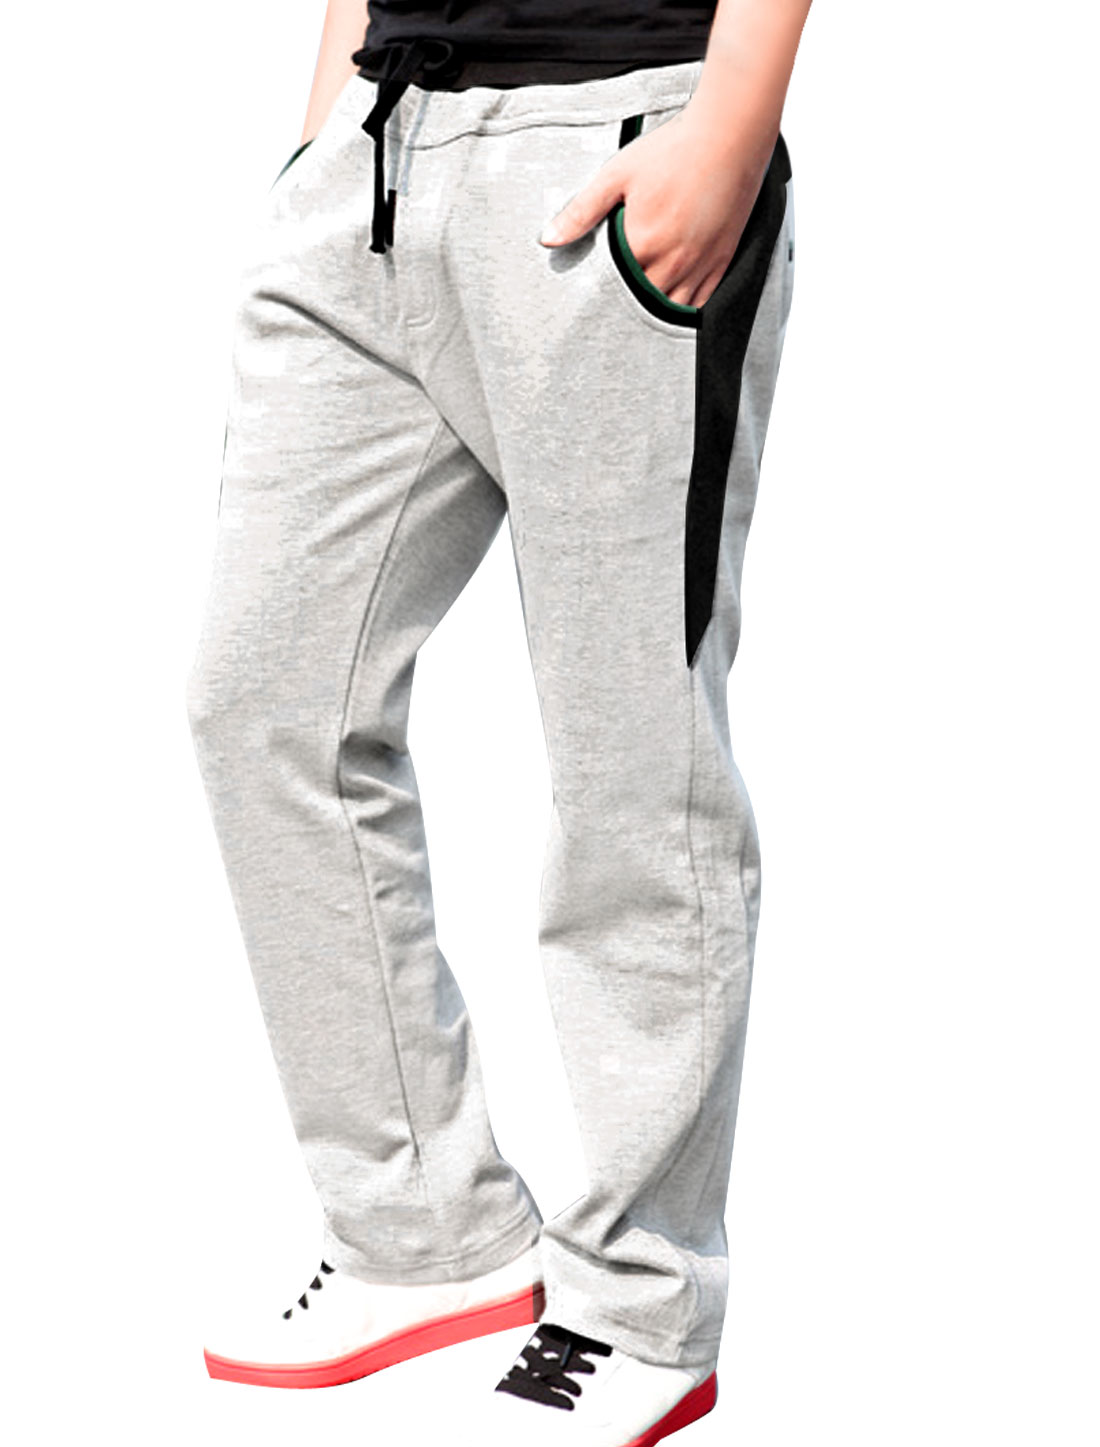 Mens-Adjustable-Waist-Ribbed-Detail-Letters-Trousers-Pants-W30-Heather-Gray